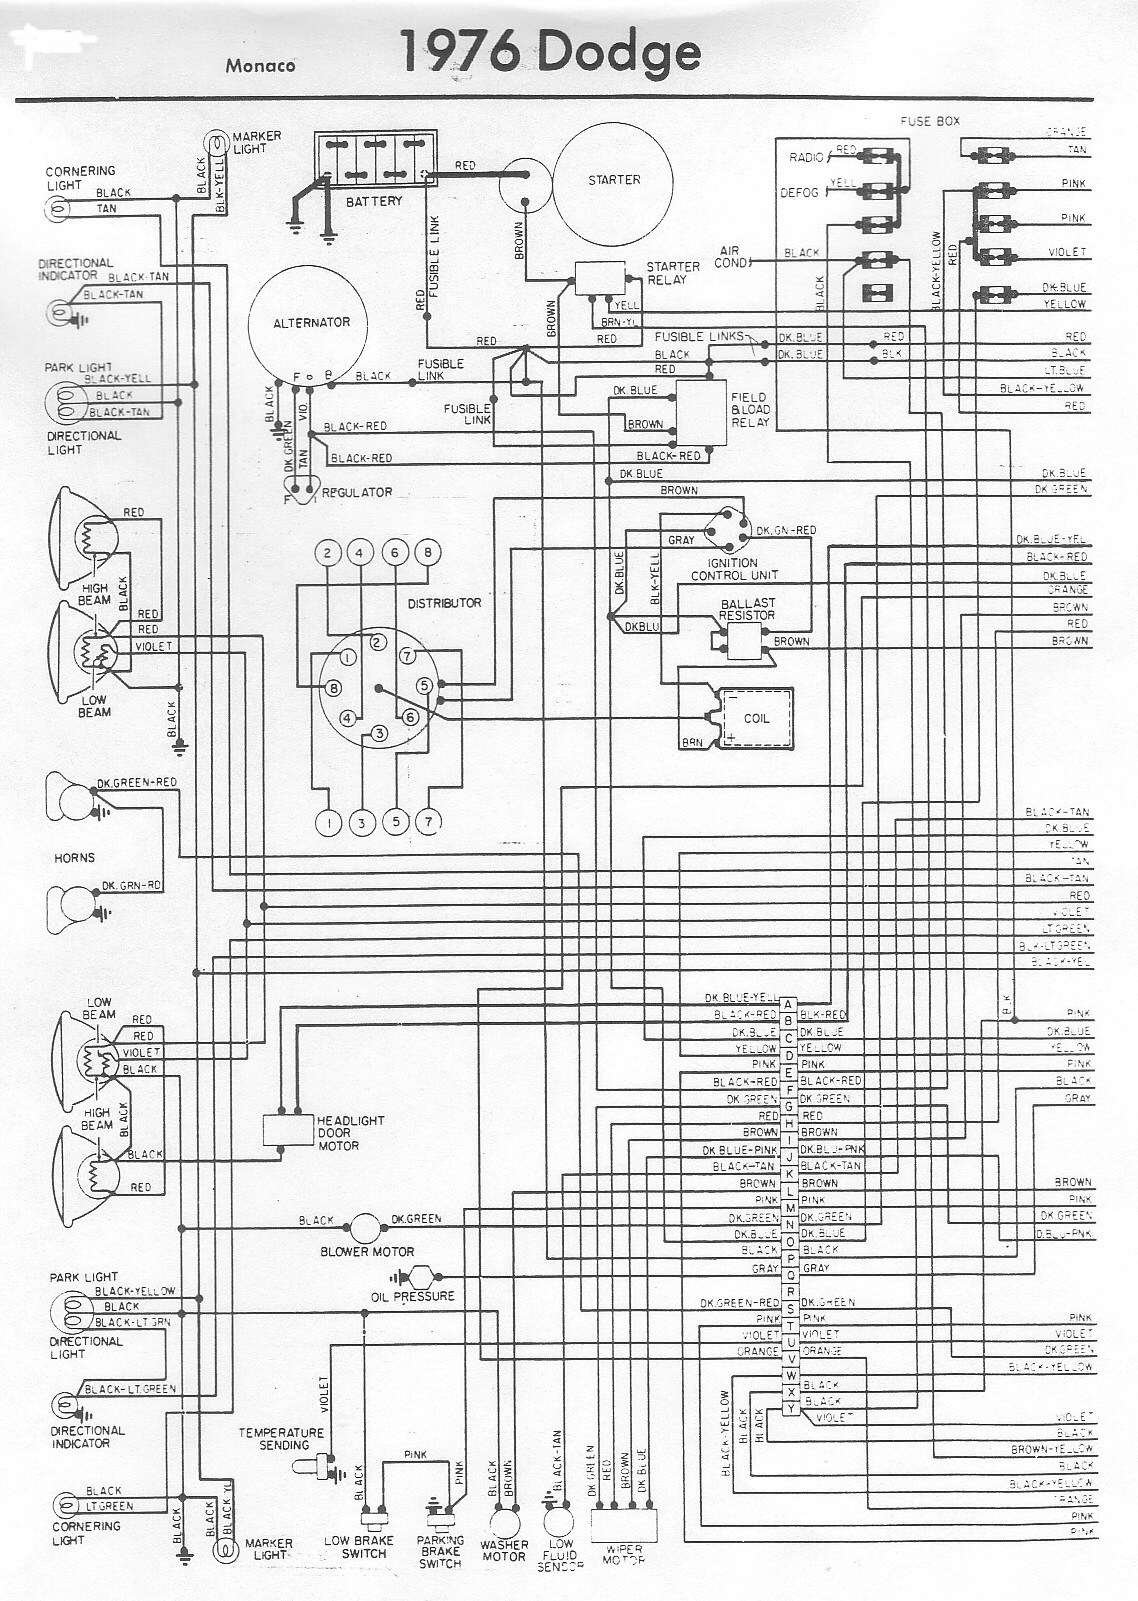 76 dodge truck wiring harness - wiring diagram options camp-neutral -  camp-neutral.studiopyxis.it  pyxis